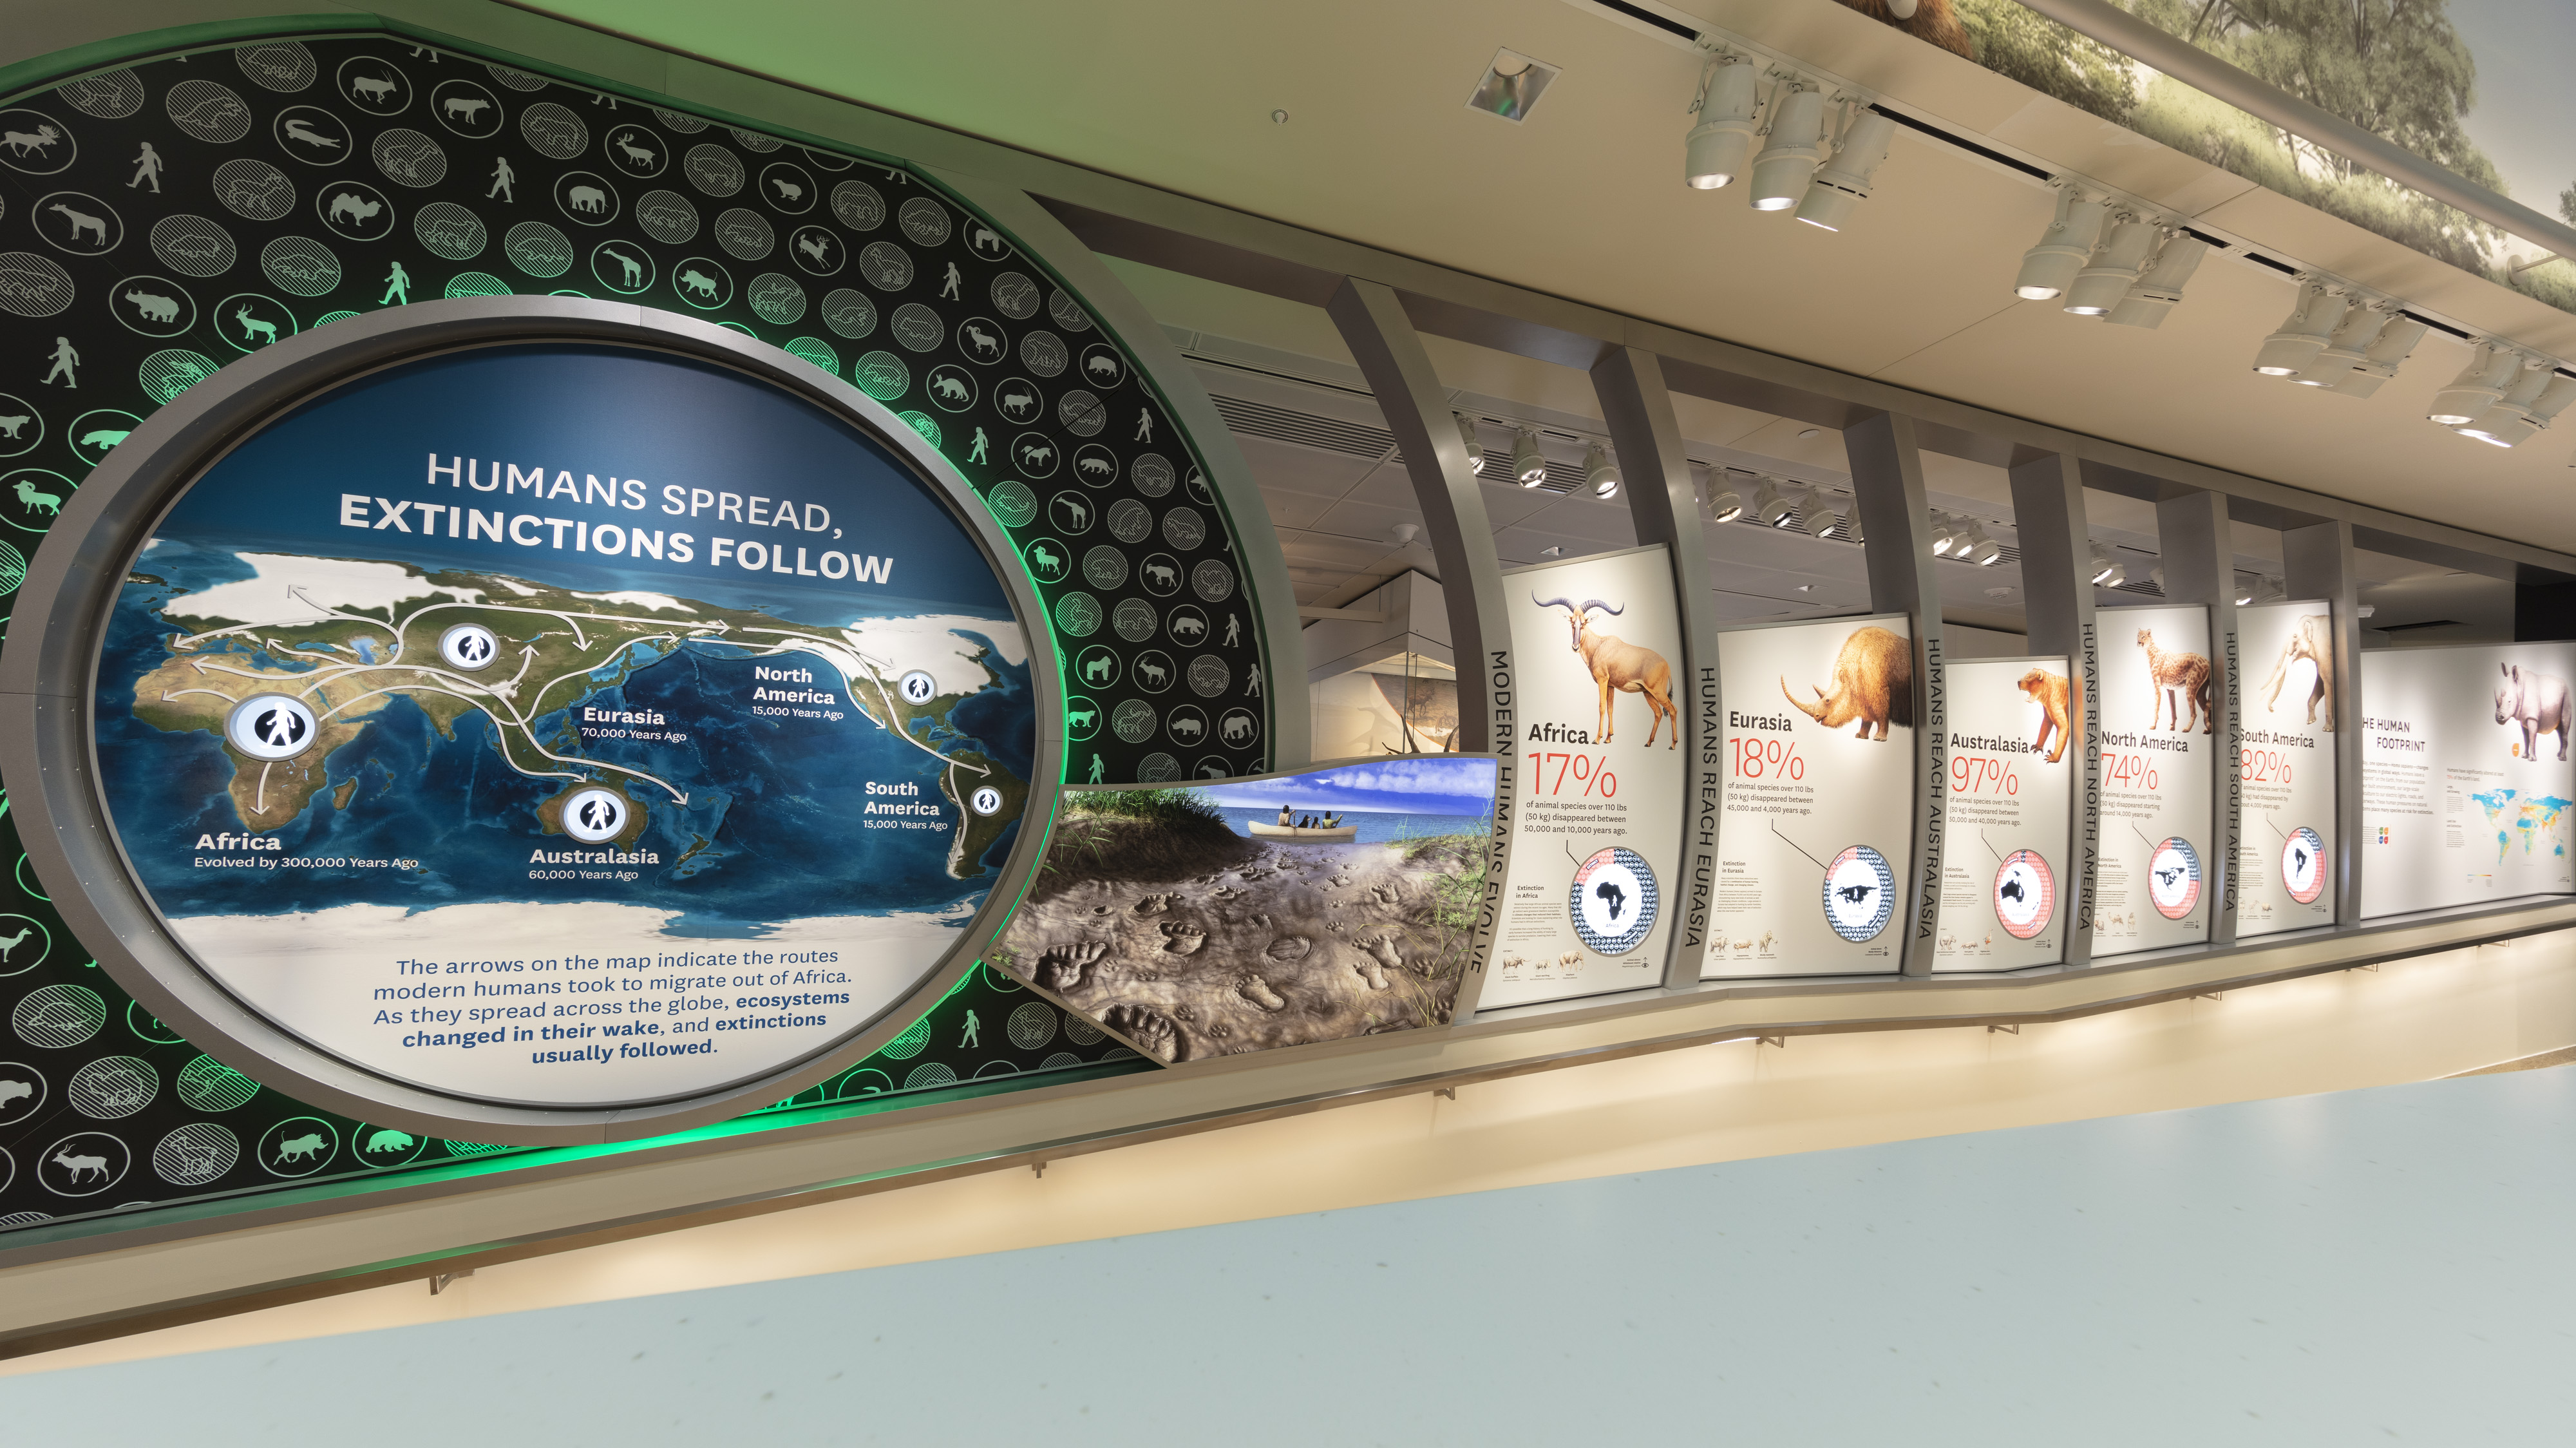 Gallery showing extinction events